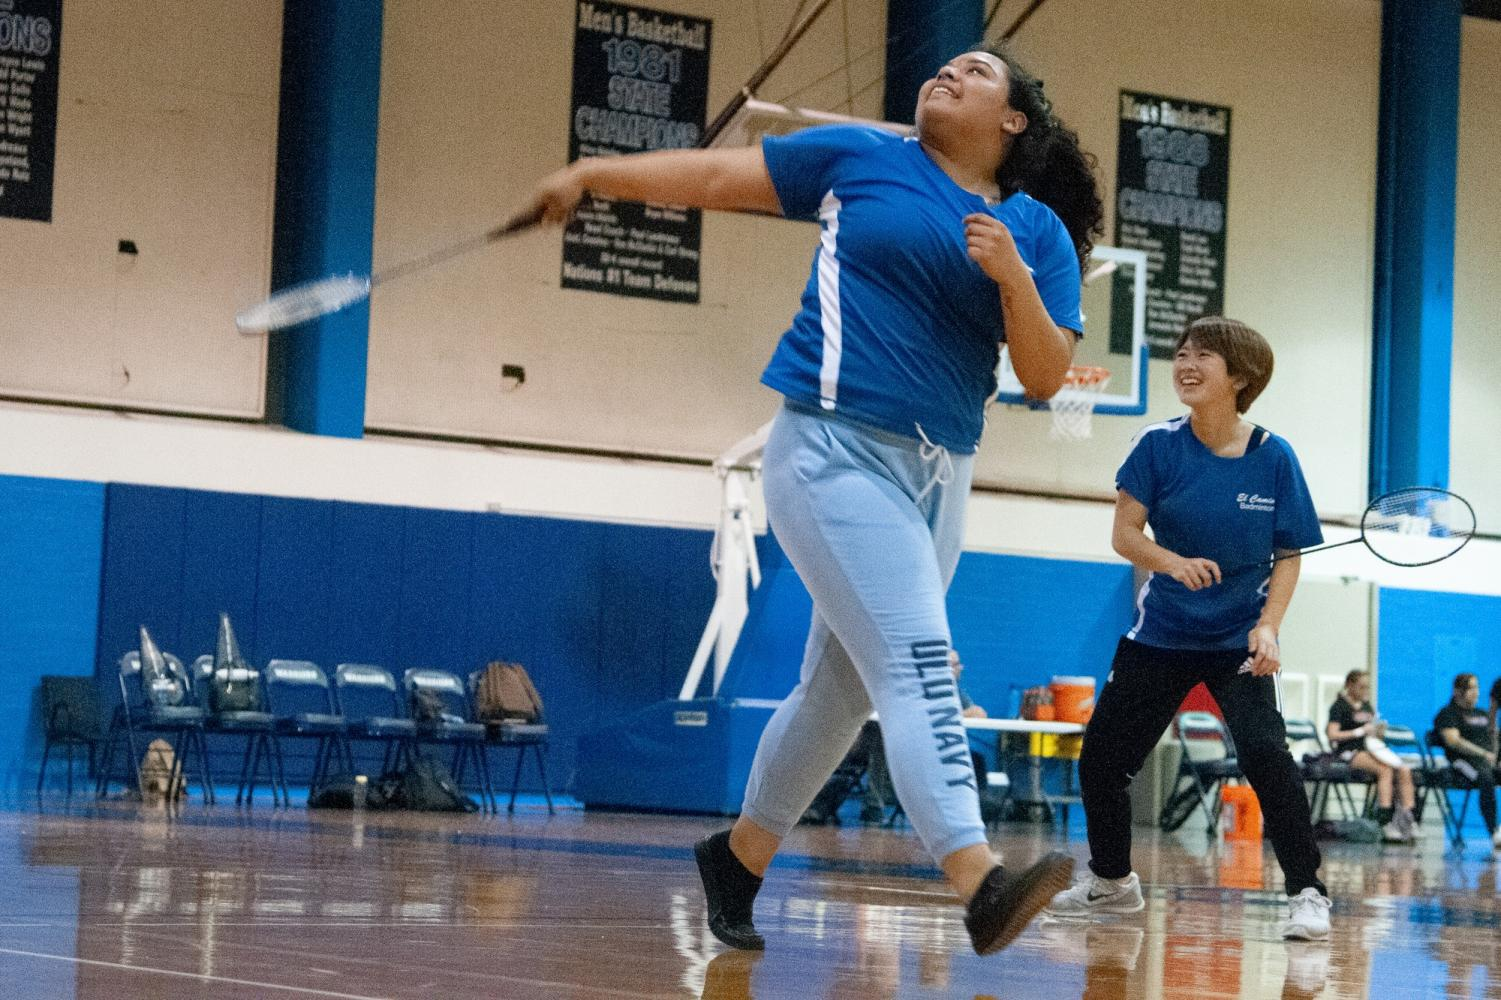 Warriors badminton players Angela Vargas-Gonzalez (front) and Miya Kawguchi (back) rally during a doubles match against Compton on Friday, March 15 at El Camino's North Gym. The energy in the building was light and relaxed, often with players making jokes with one another. Photo credit: Elena Perez